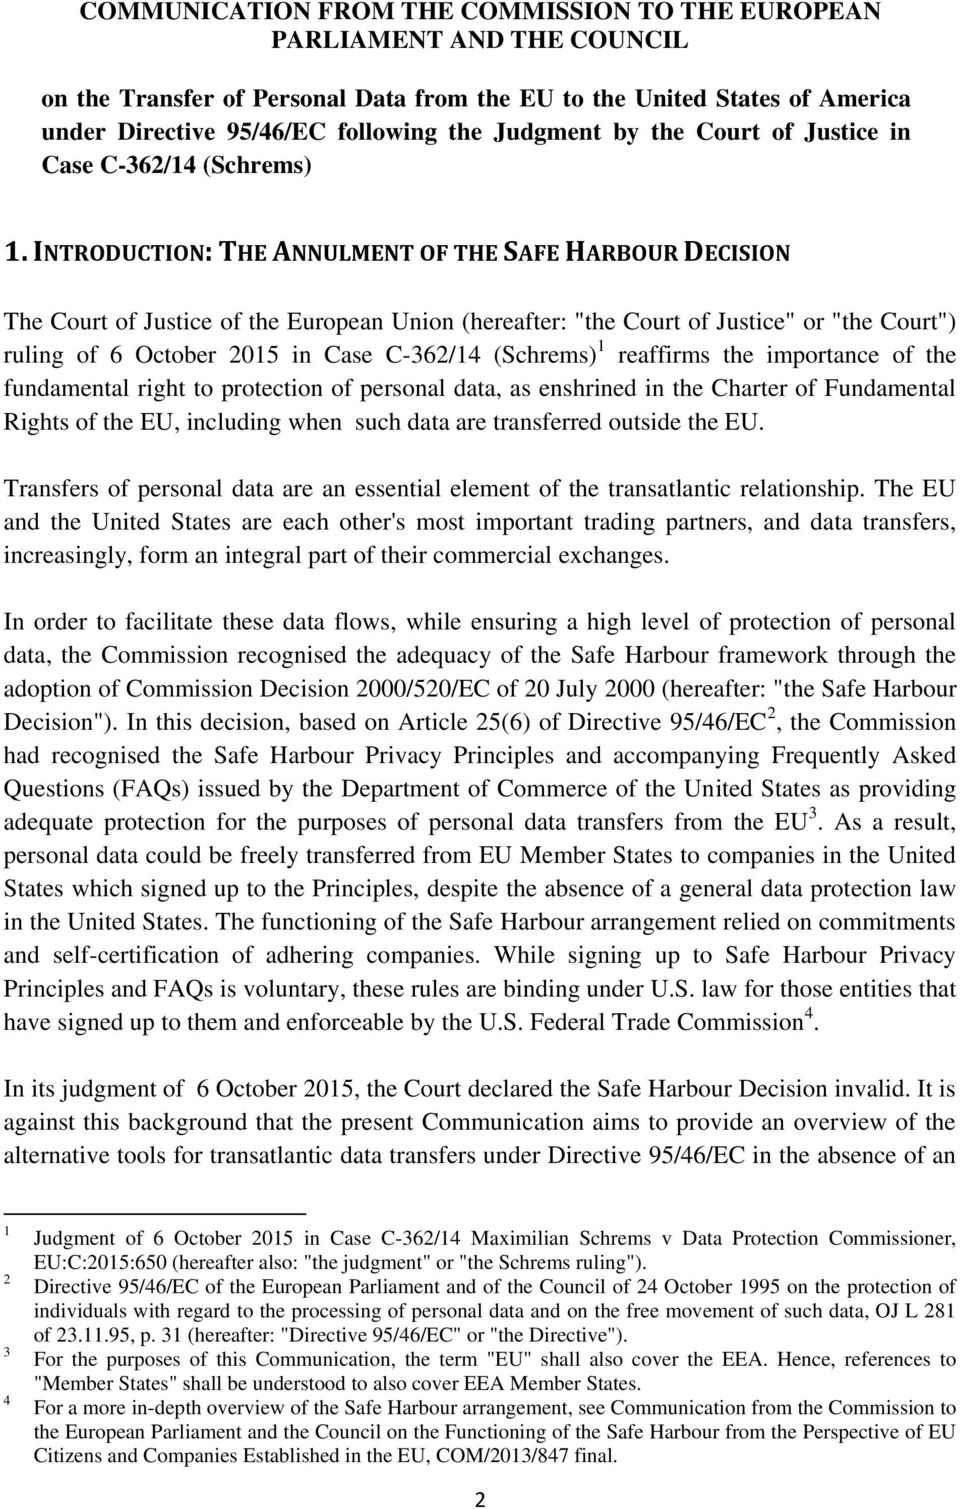 "INTRODUCTION: THE ANNULMENT OF THE SAFE HARBOUR DECISION The Court of Justice of the European Union (hereafter: ""the Court of Justice"" or ""the Court"") ruling of 6 October 2015 in Case C-362/14"